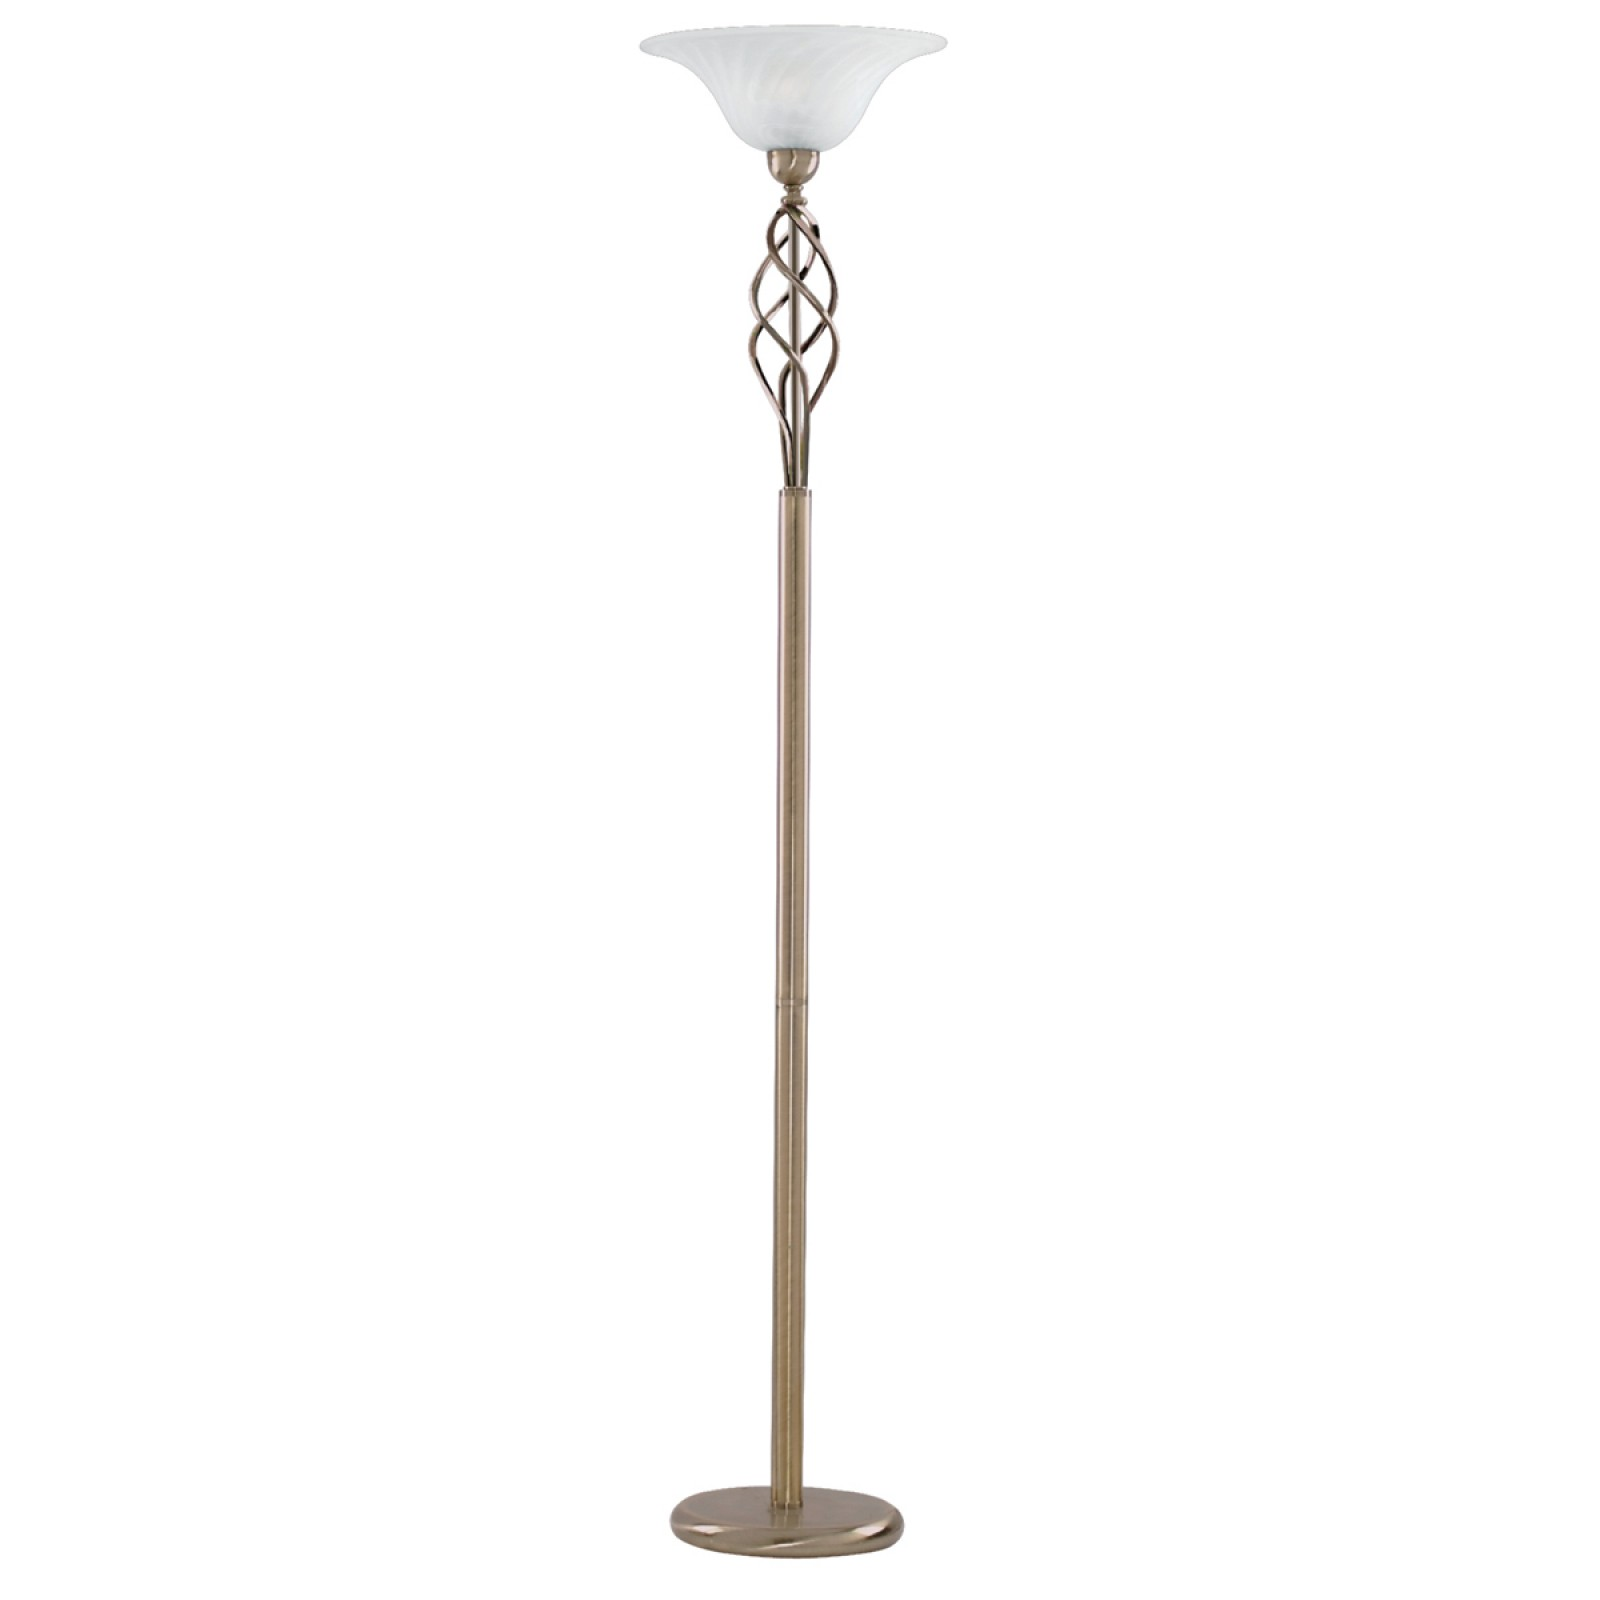 9b144a9980bd UPLIGHTER FLOOR LAMP - ANT/BRASS CW MARBLE GLASS